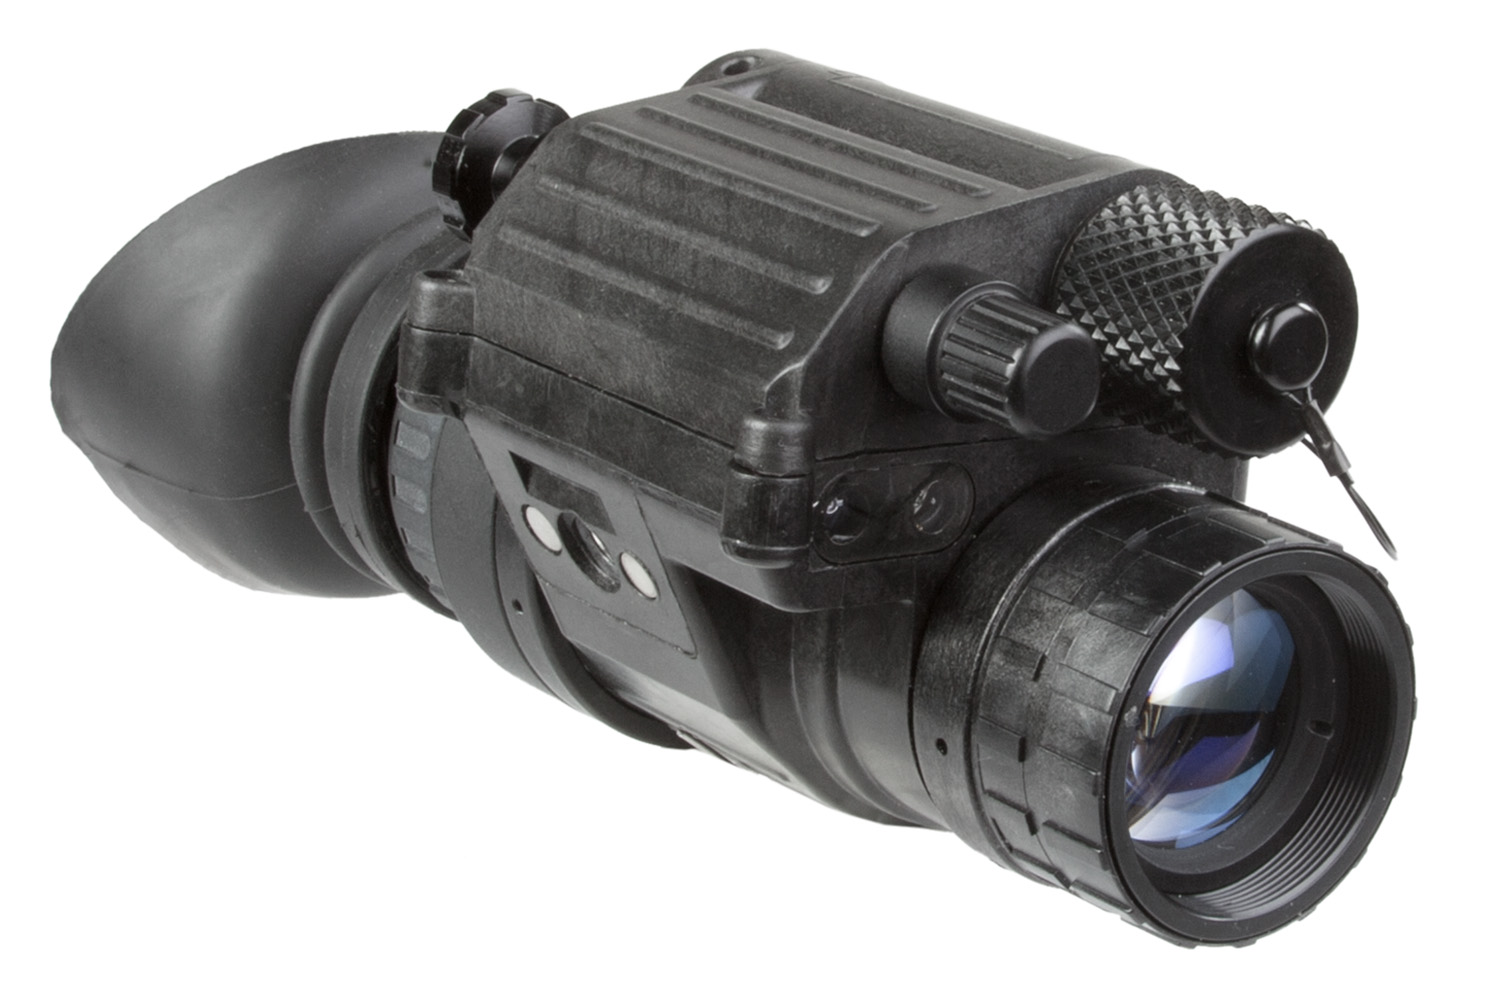 Agm Global Vision 11P14122453011 PVS-14 NL1 Gen2 Level 1 Night Vision Monocular 1x 40 Degrees FOV Black